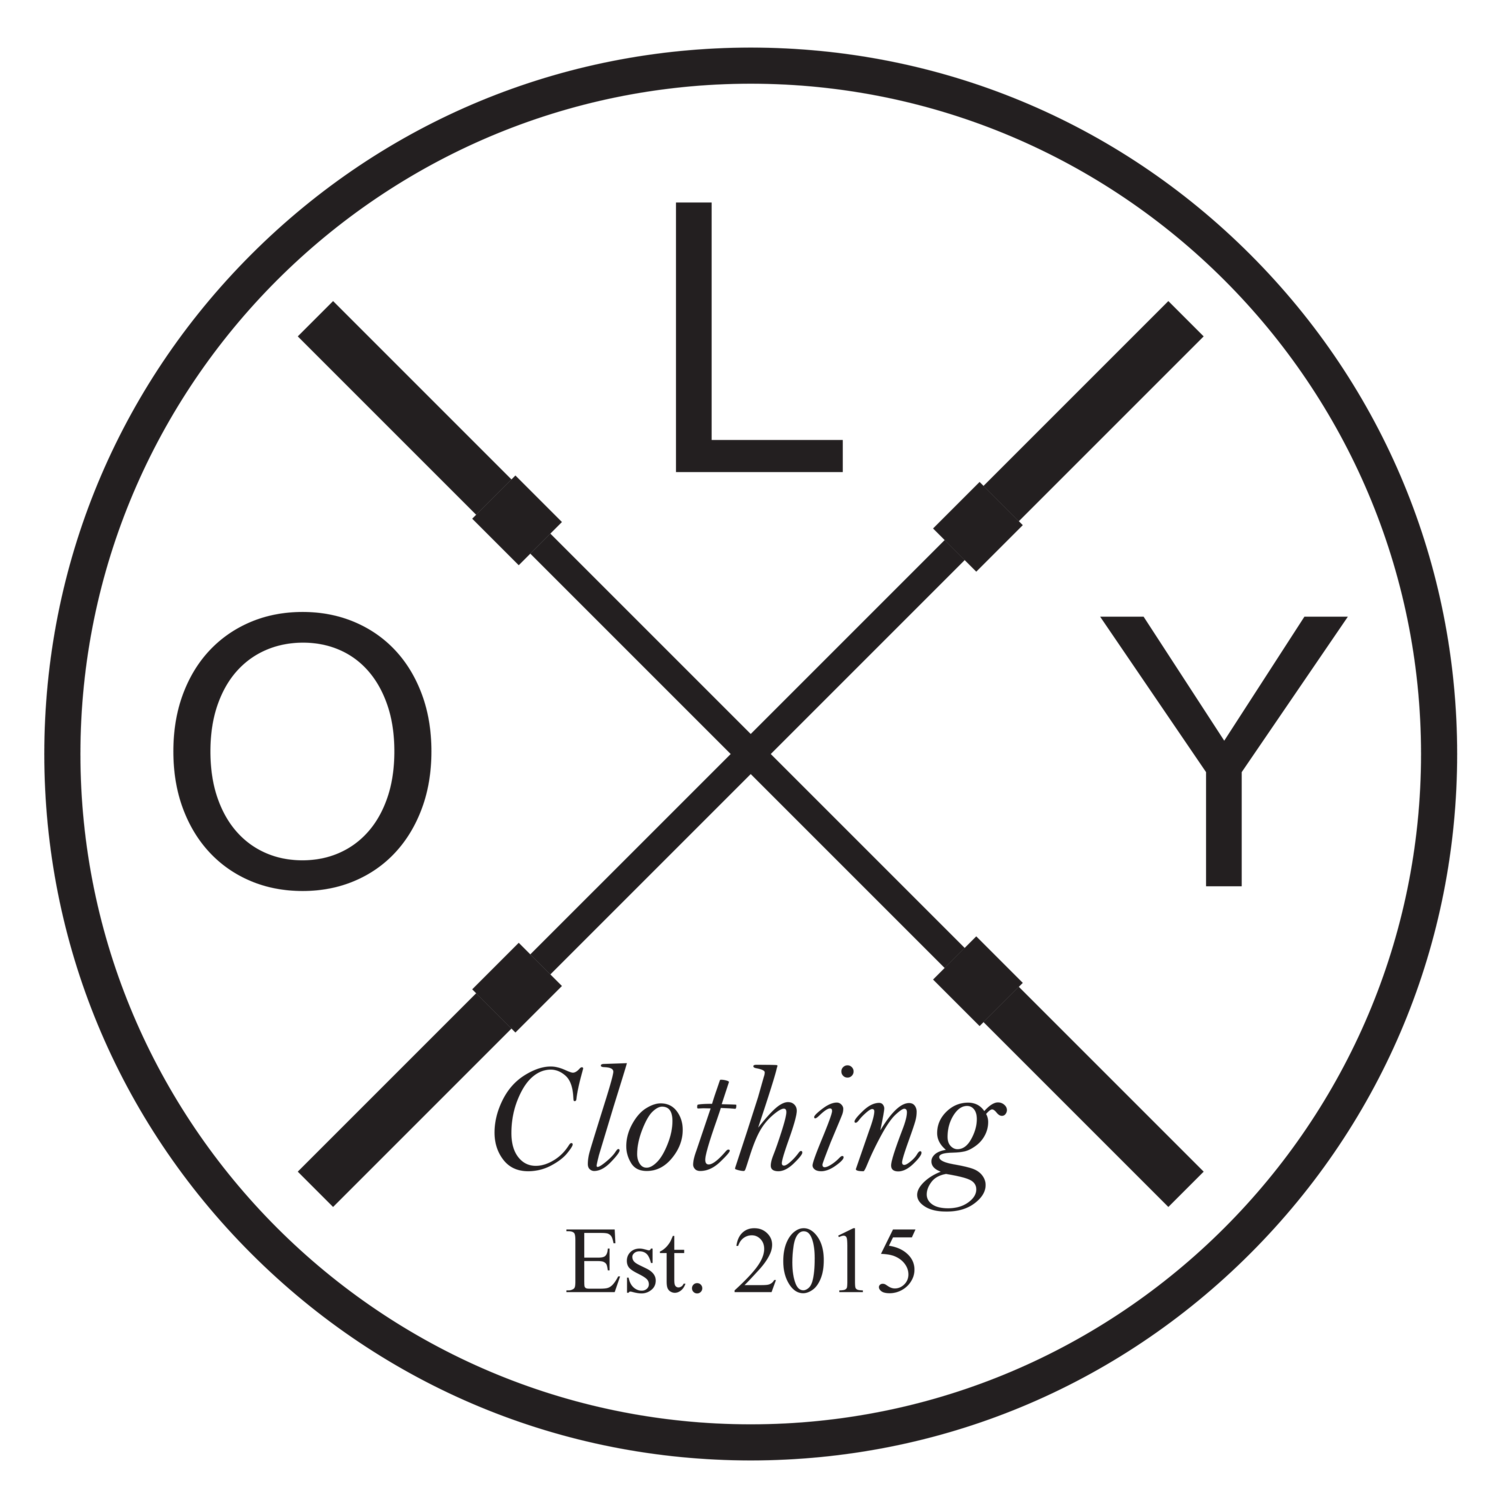 OLY CLOTHING